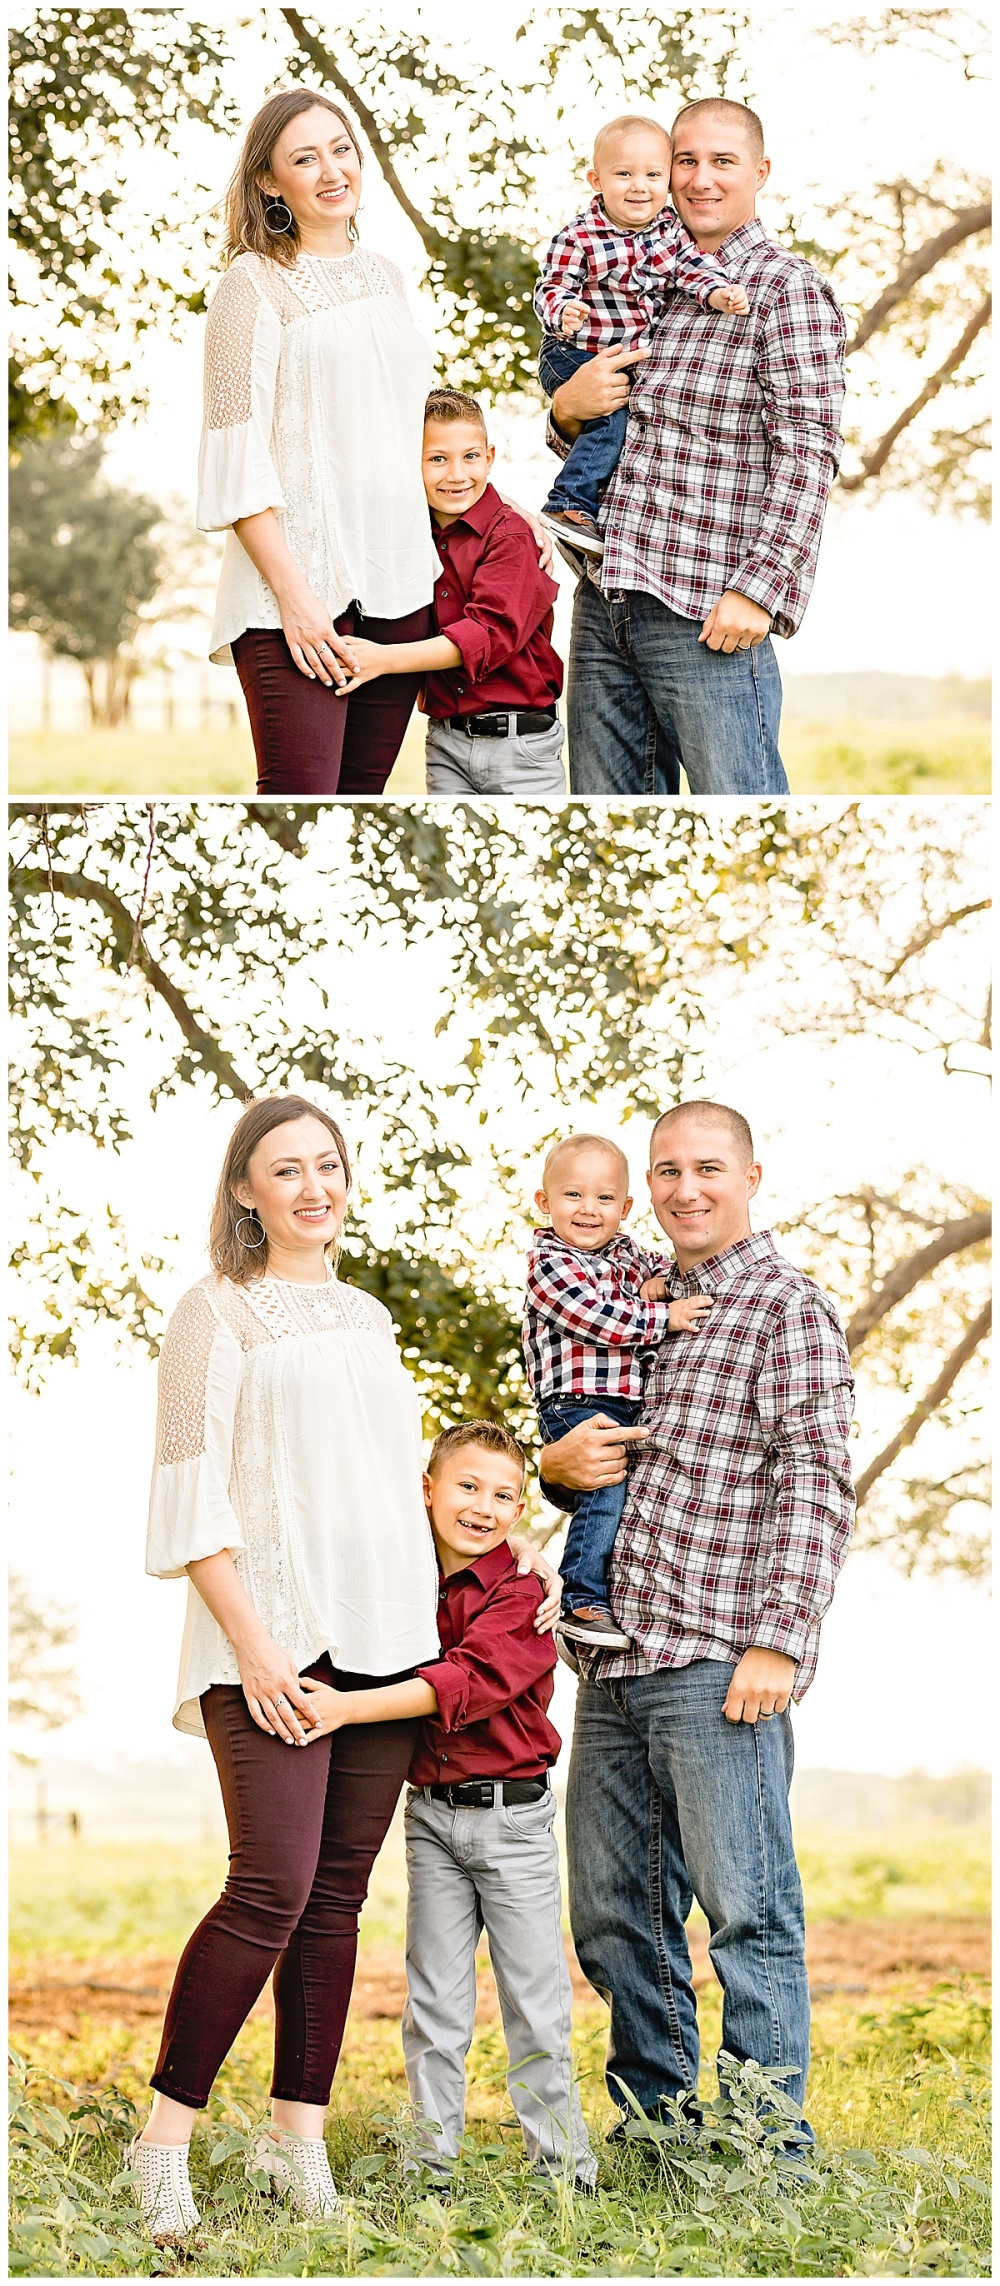 Family-Photographer-LaVernia-Texas-Fall-Carly-Barton-Photography_0003.jpg